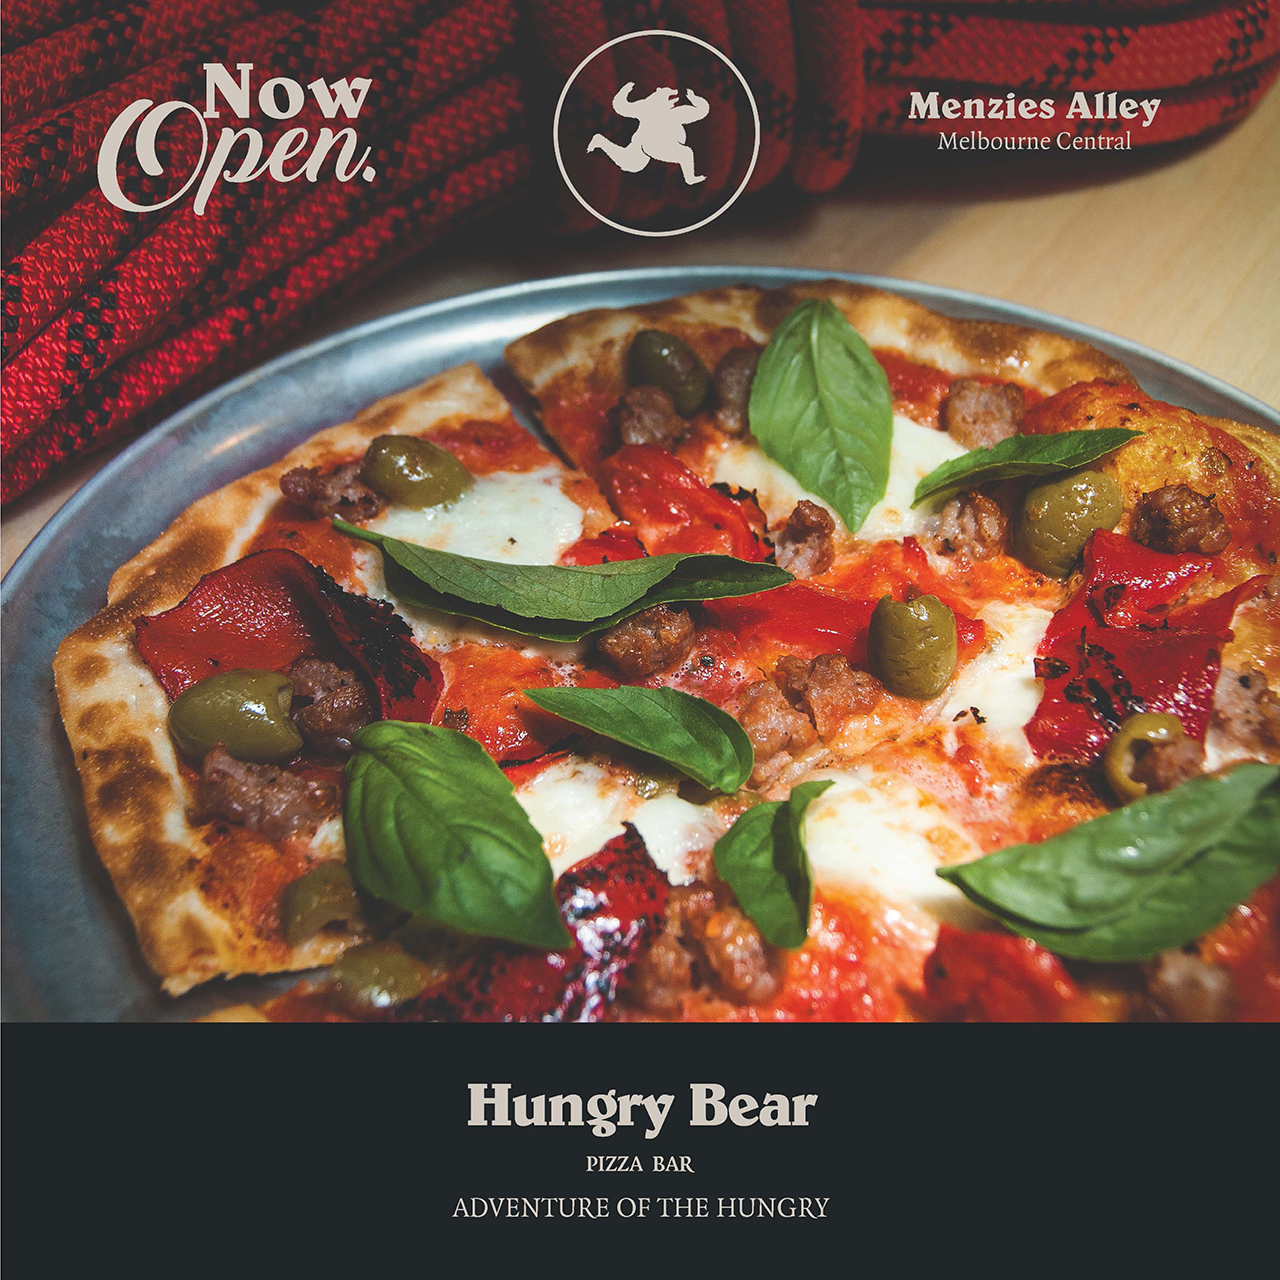 Hungry Bear is open